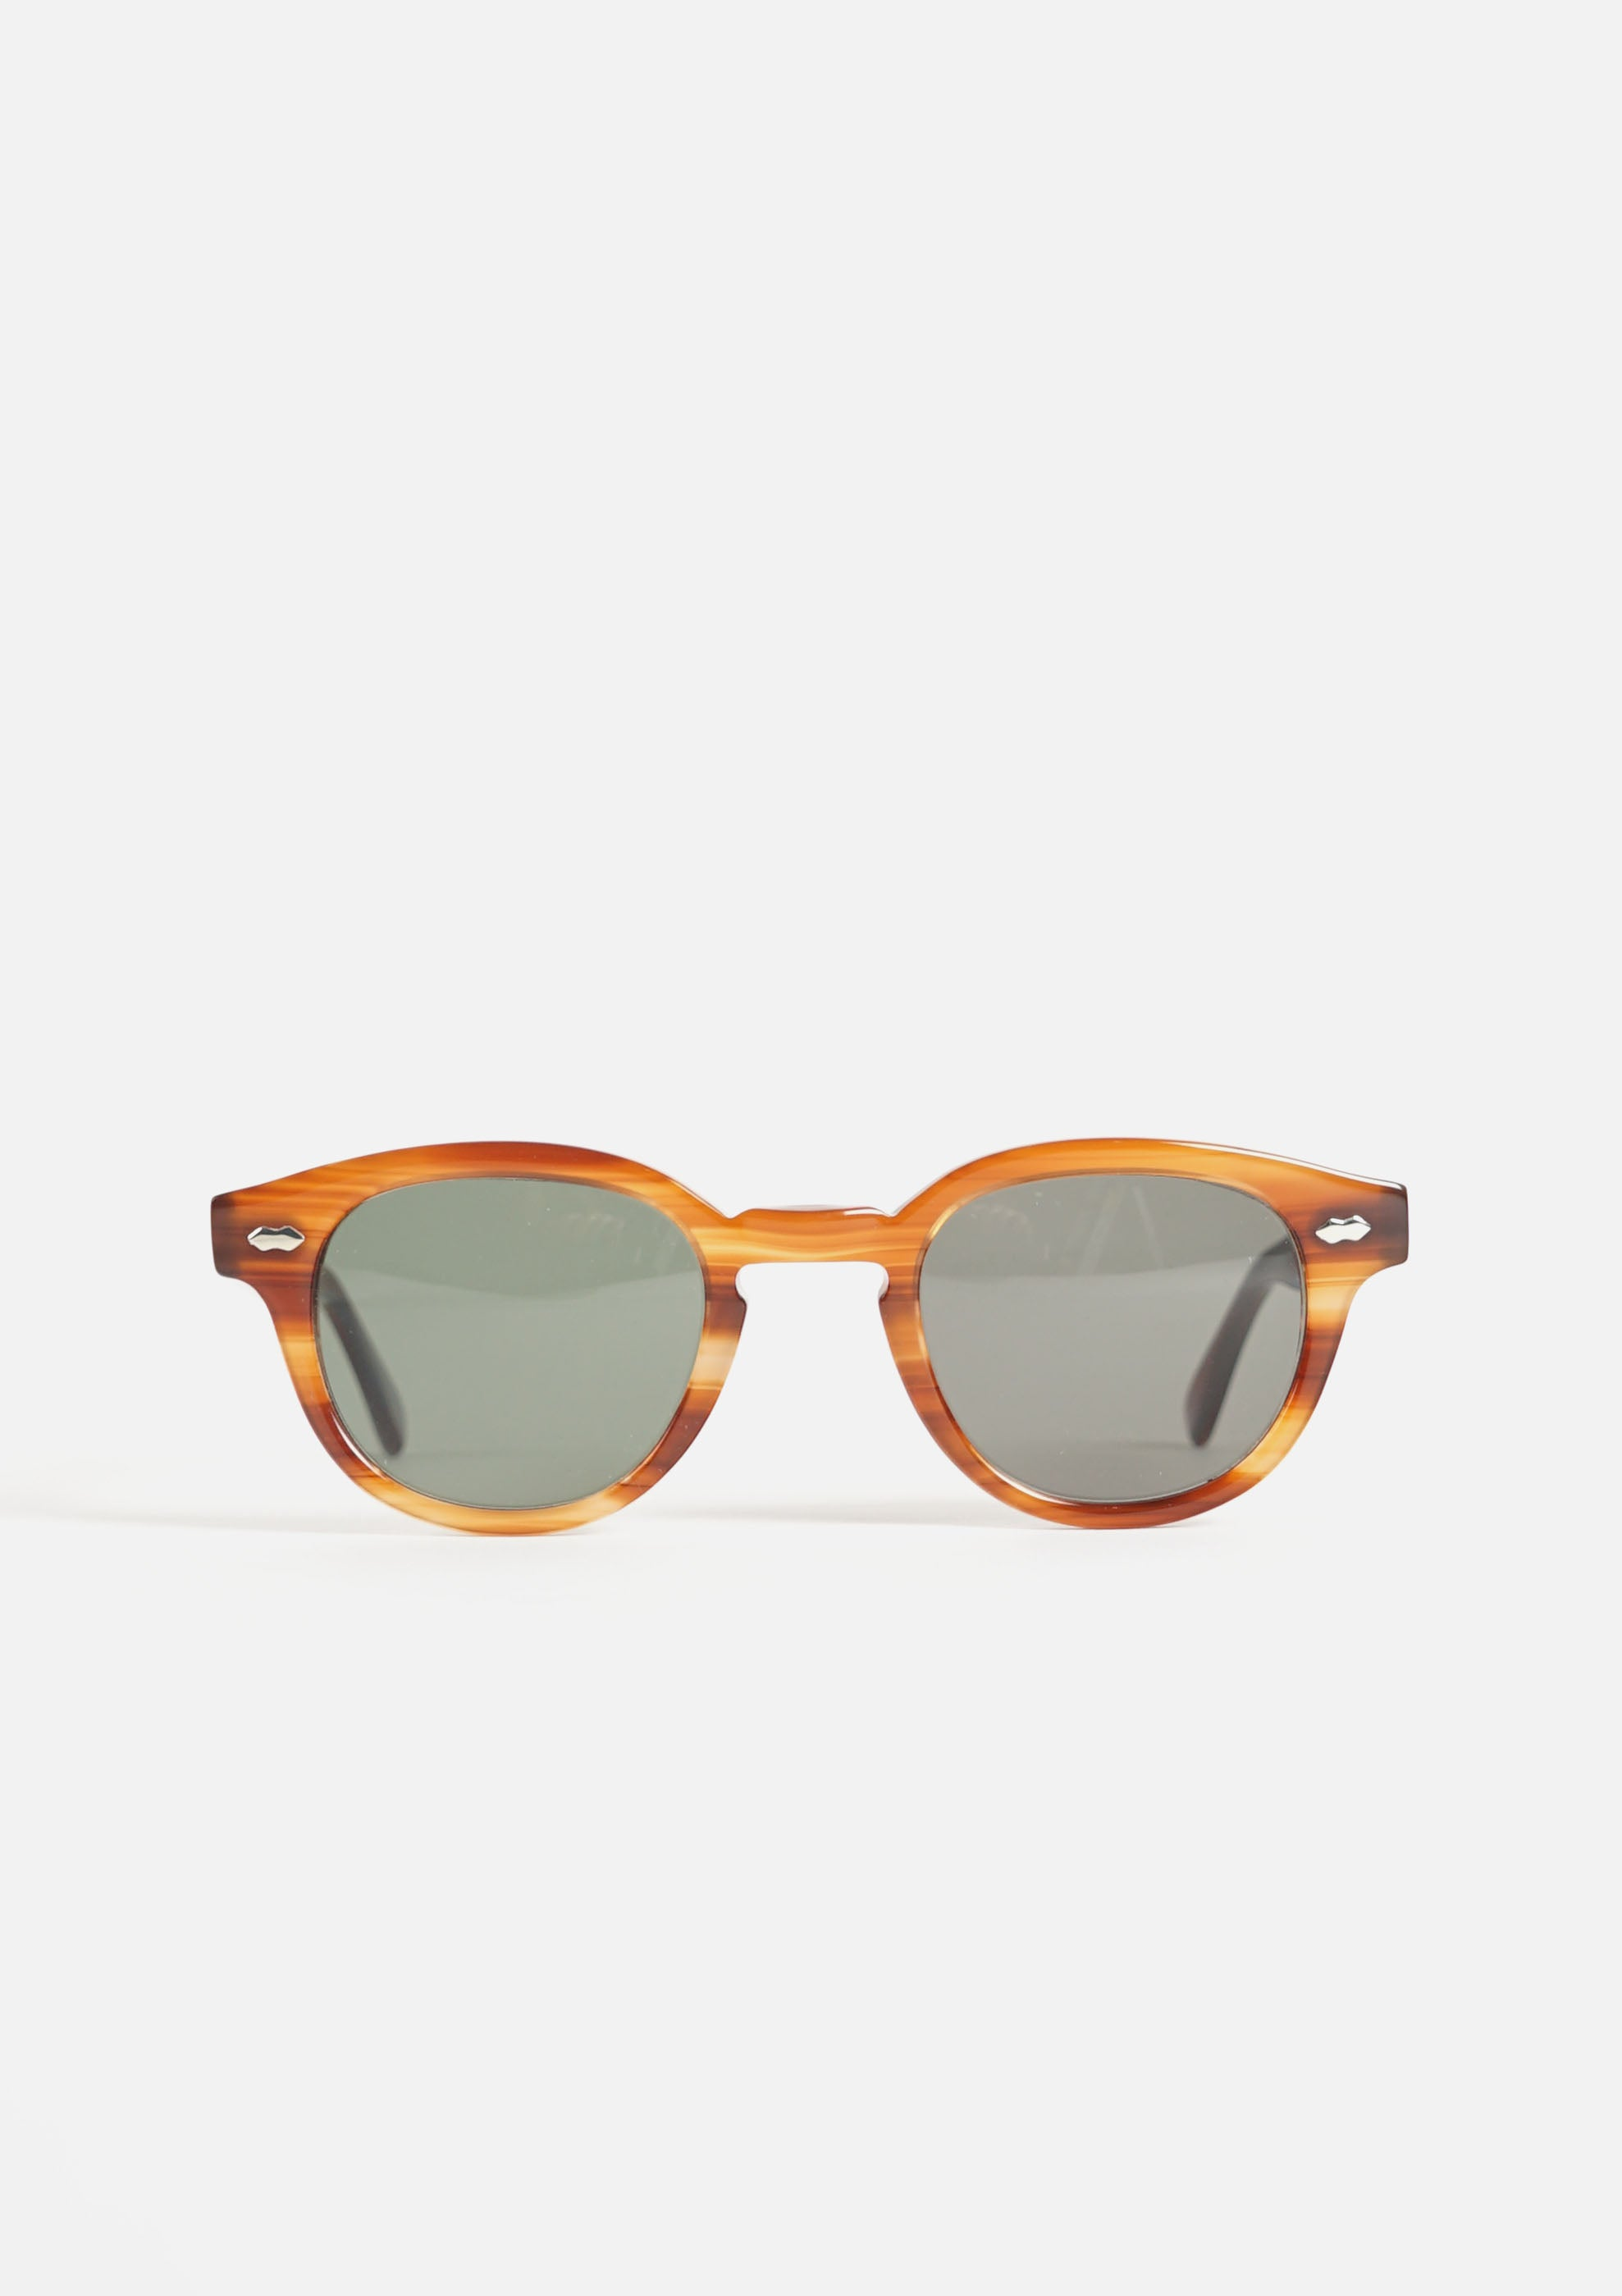 MODEL 511 Sunglasses  Brown Tortoise